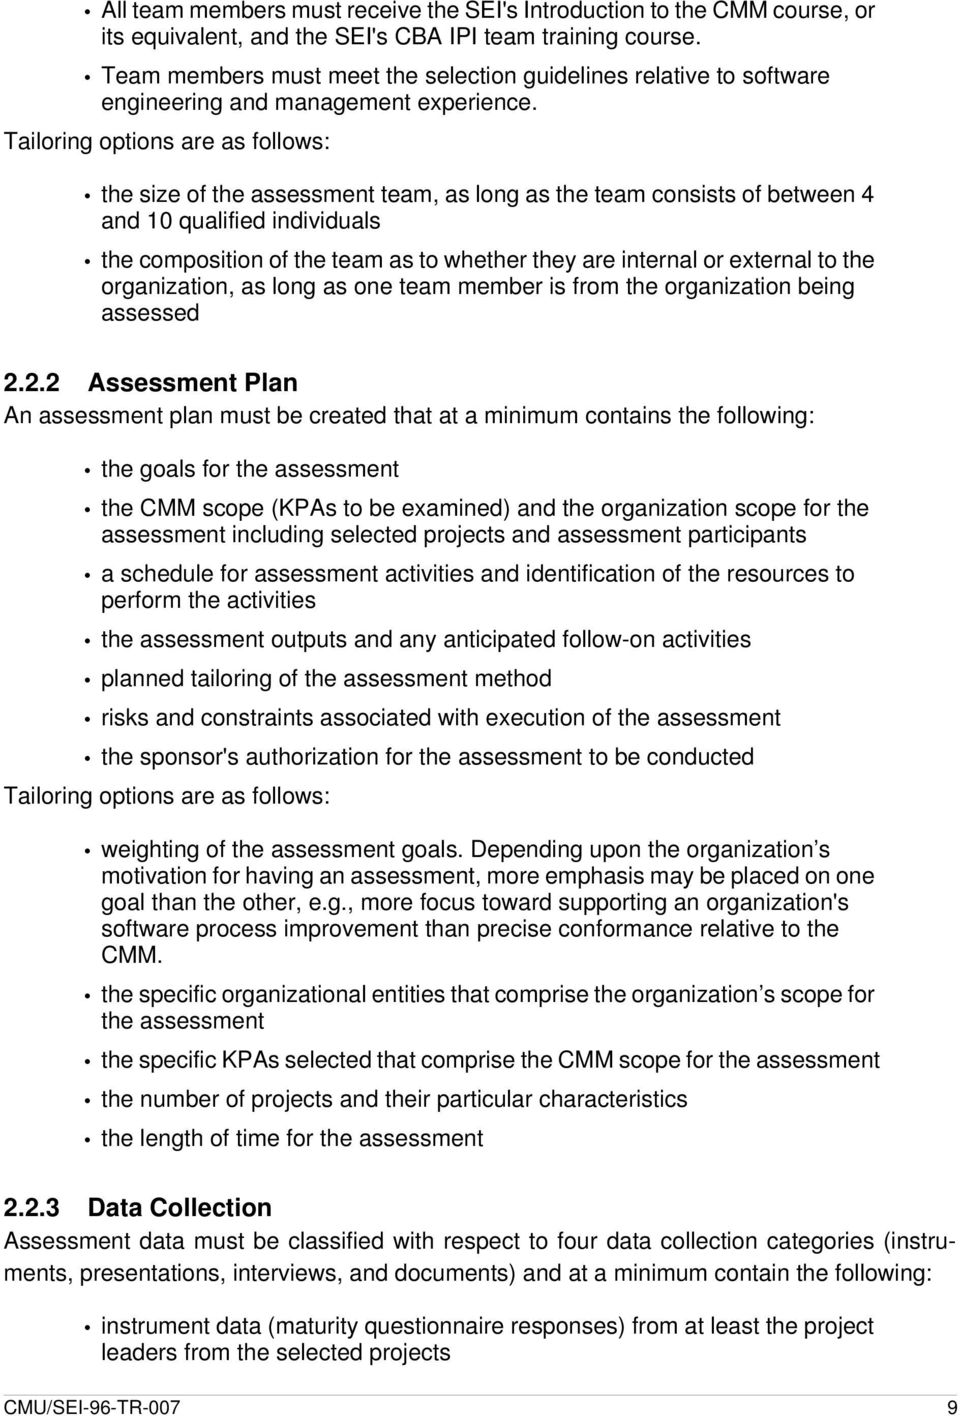 Tailoring options are as follows: the size of the assessment team, as long as the team consists of between 4 and 10 qualified individuals the composition of the team as to whether they are internal